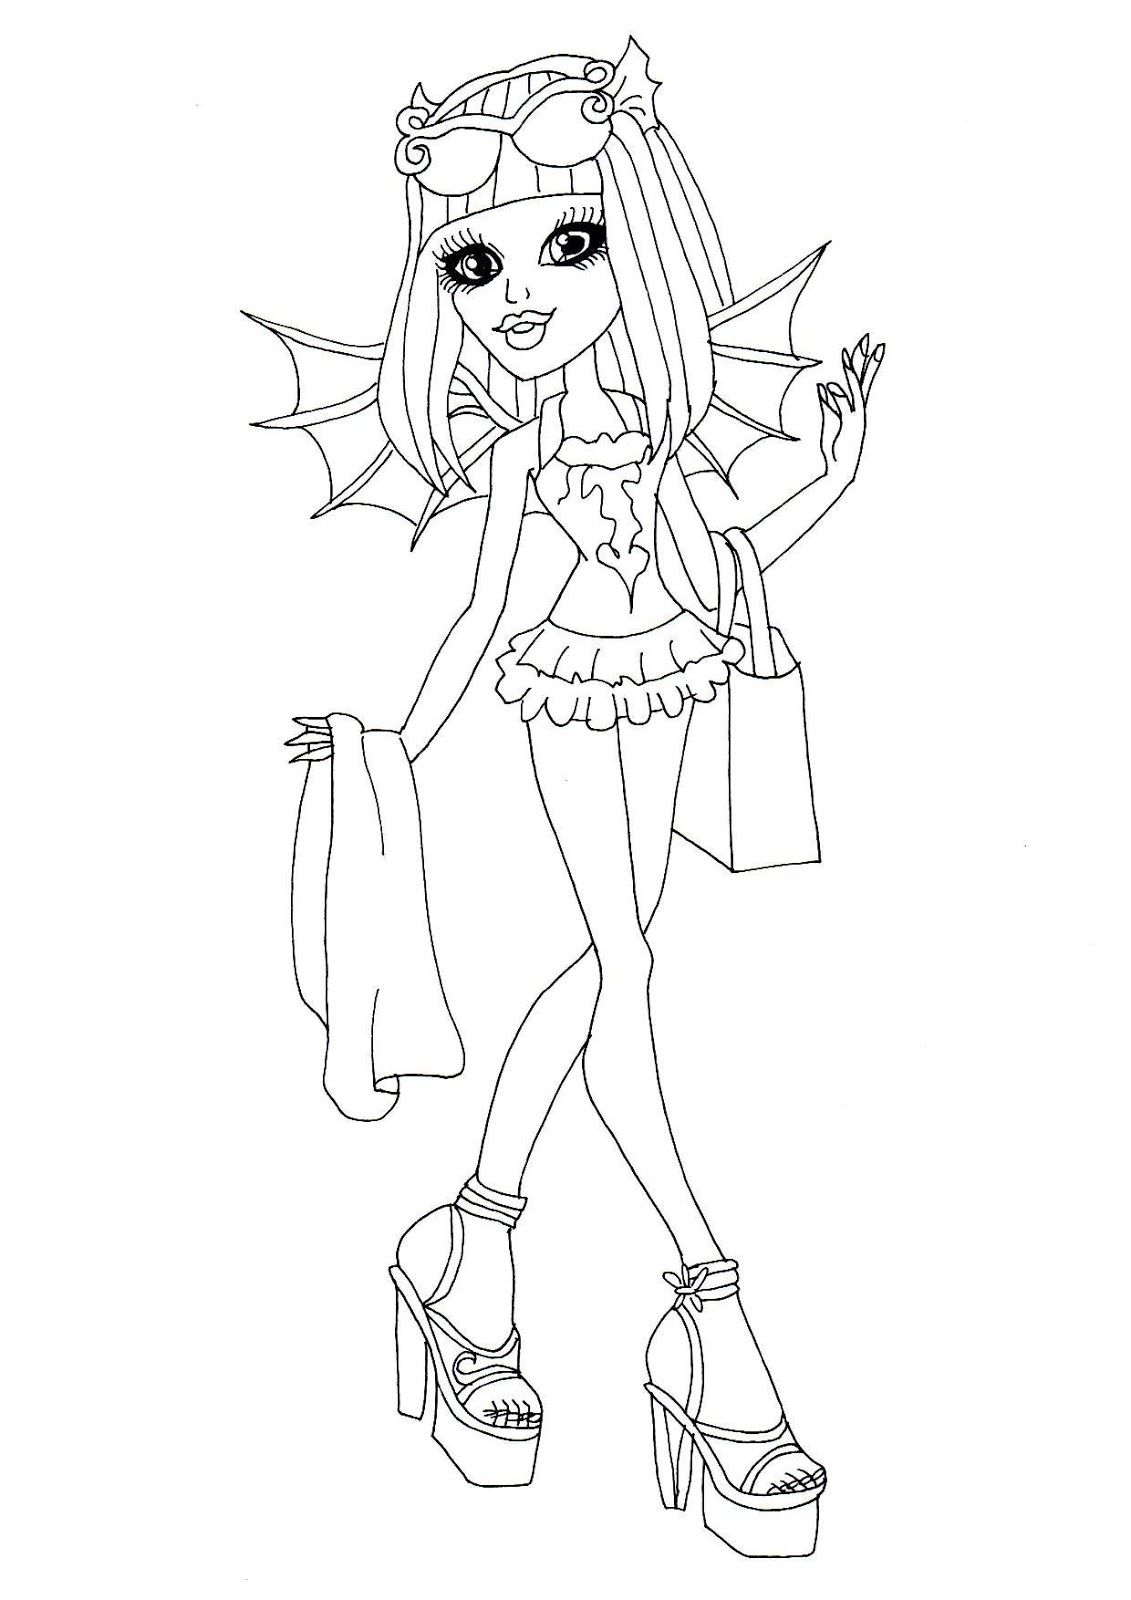 Monster High Ausmalbilder Rochelle Goyle : Monster High Rochelle Goyle Monster High Coloring Pages